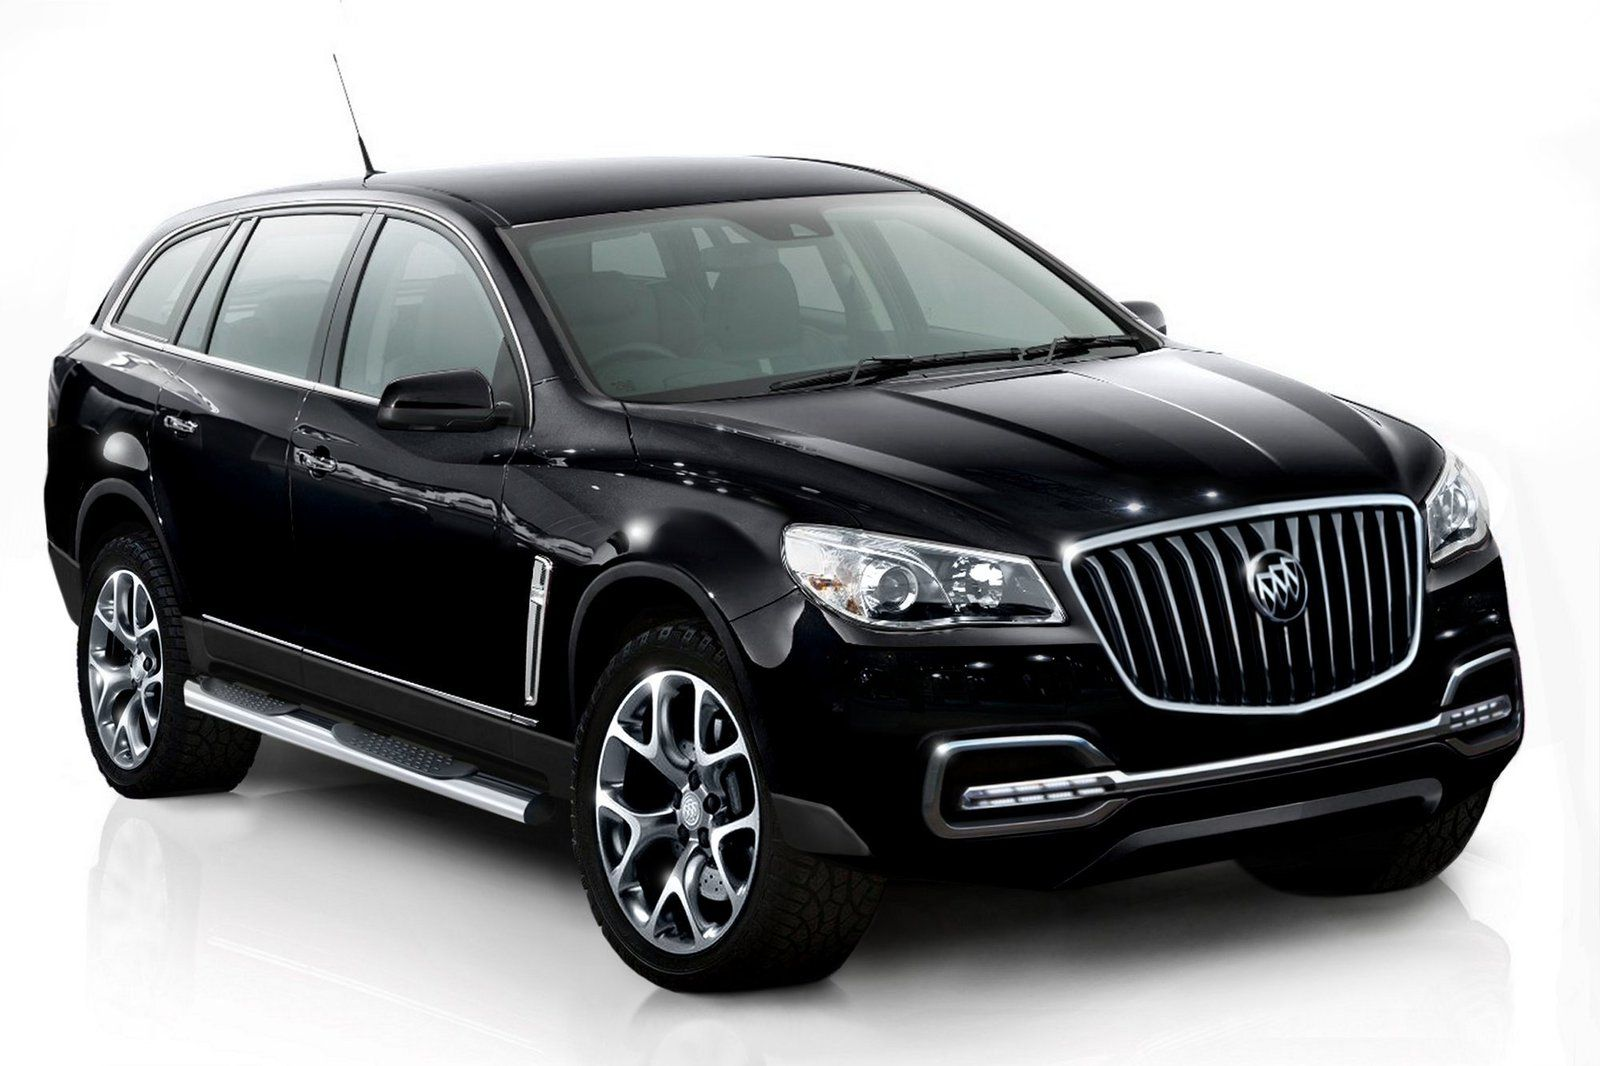 enclave buick specs and suv strongauto photos